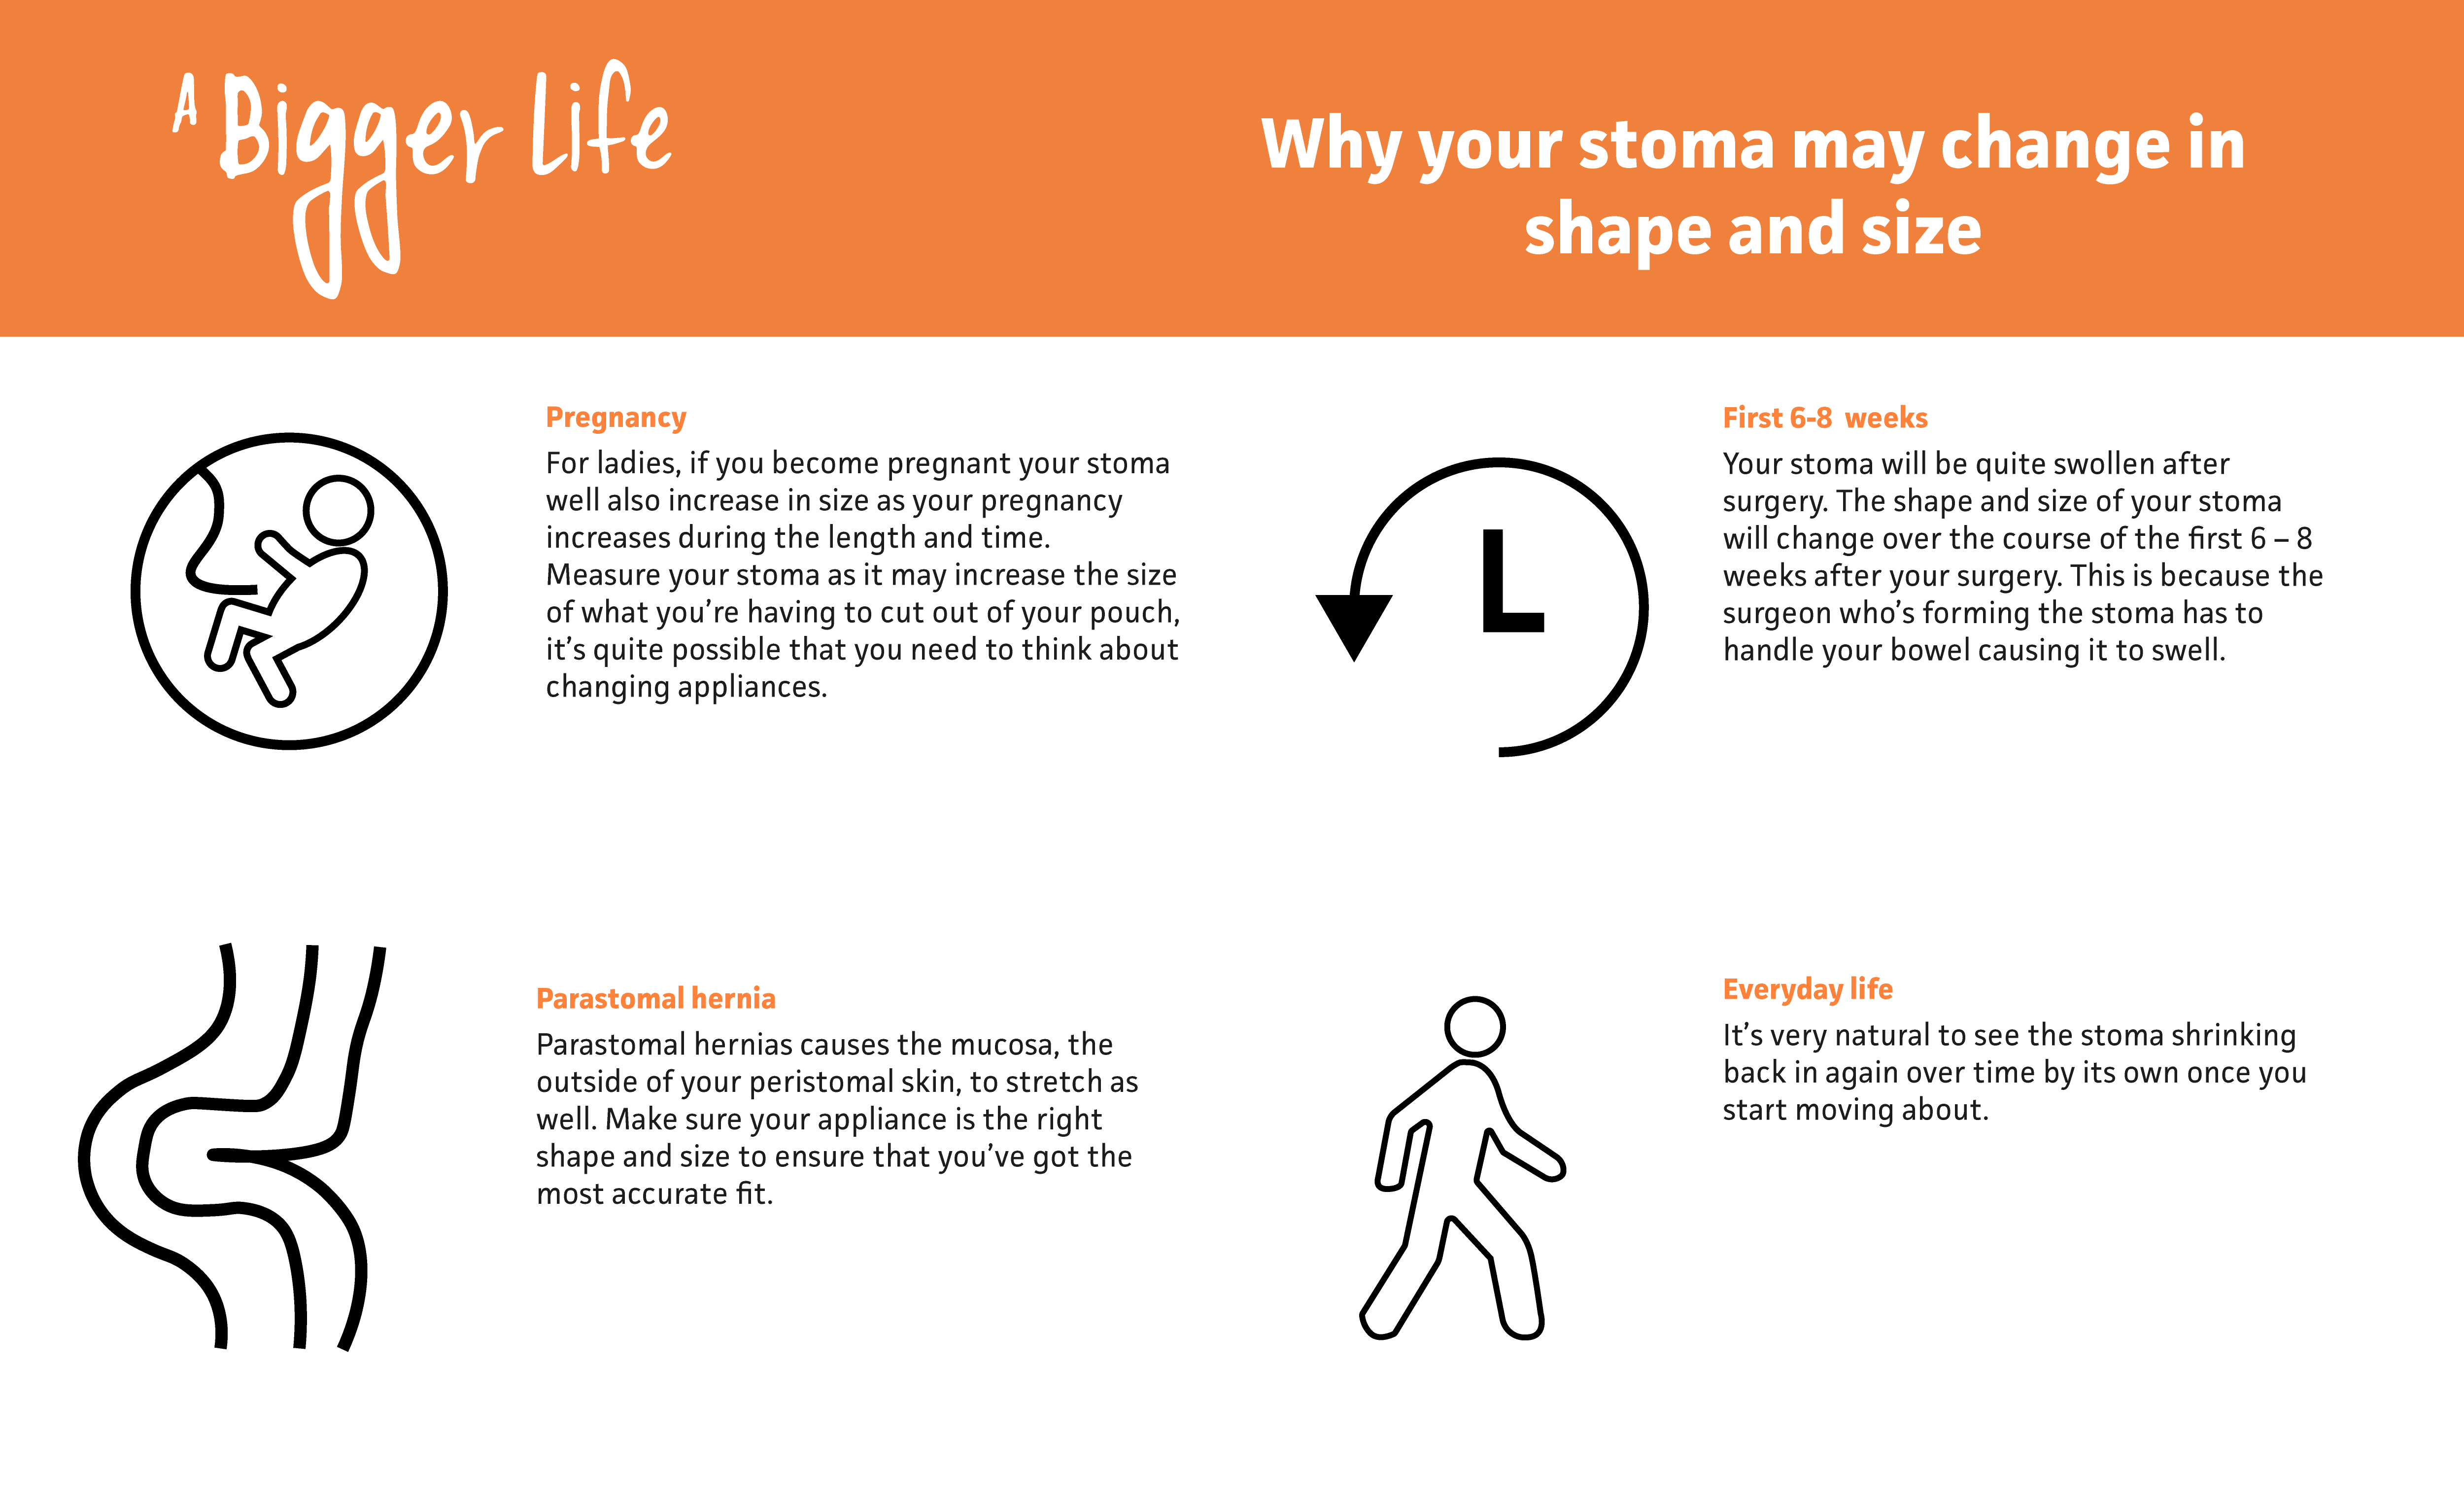 Why your stoma may change in shape and size Infographic